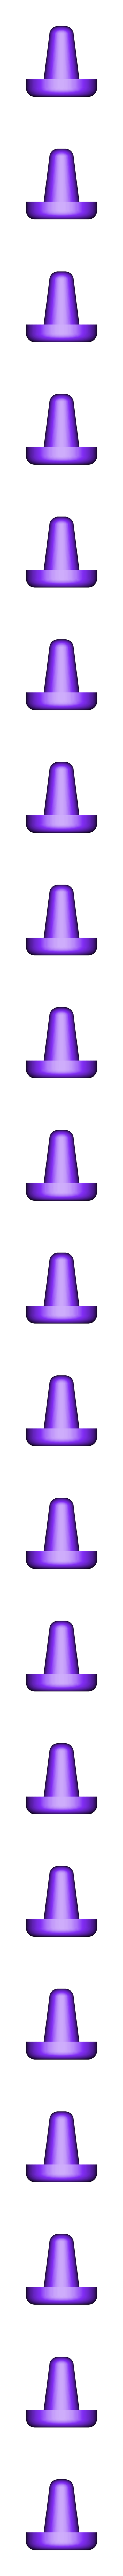 hole_plug.stl Download free STL file OMG oh no yet another lack enclosure • 3D printable template, kumekay